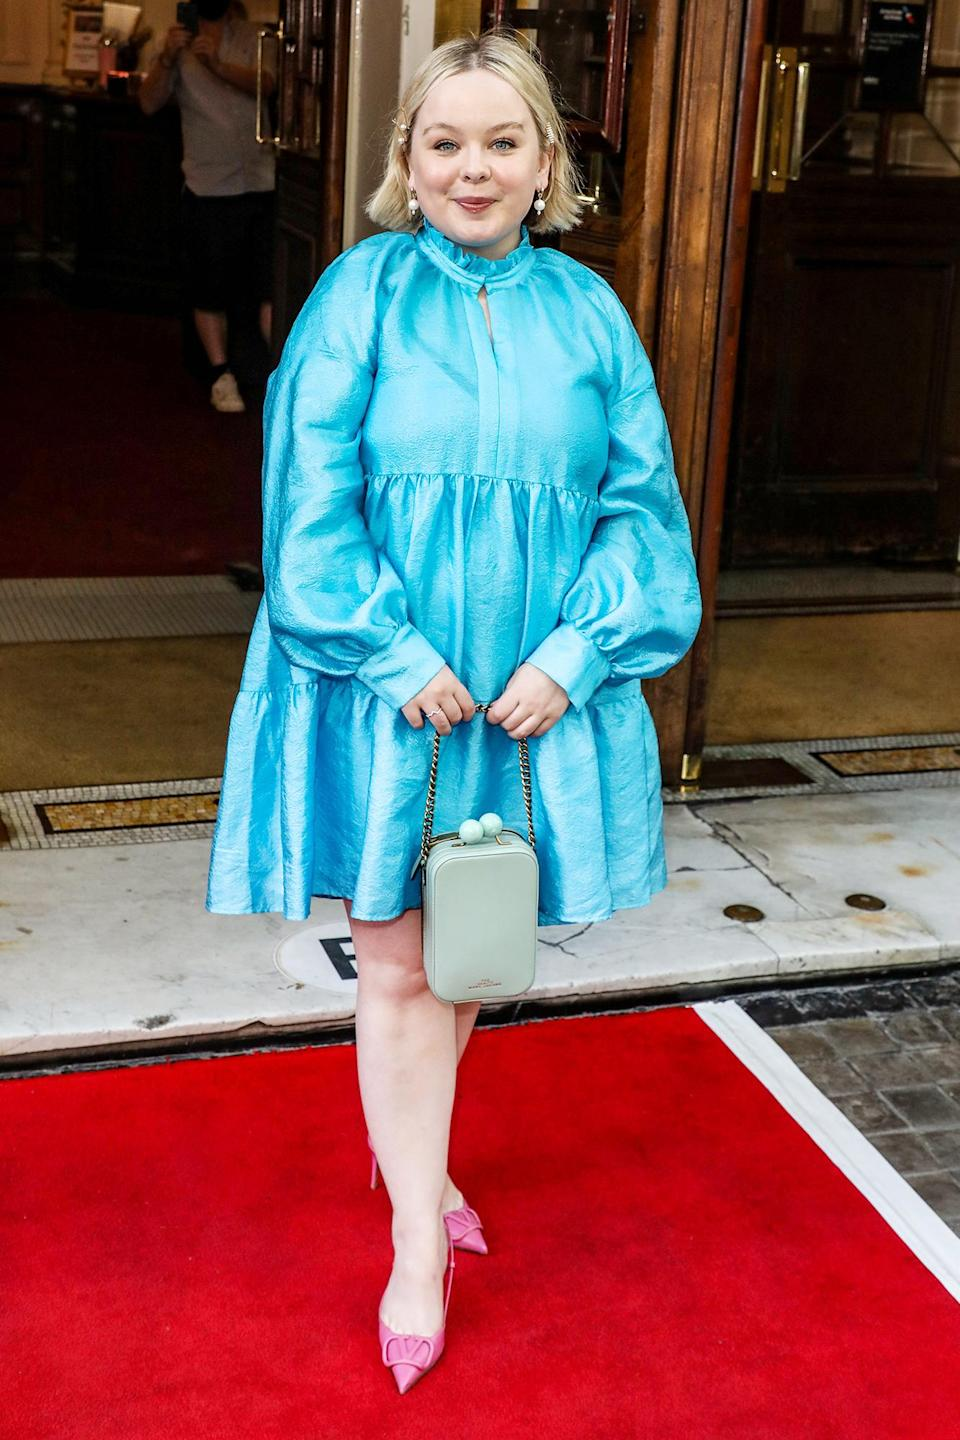 <p>Nicola Coughlan looks radiant in a baby blue mini dress at the Gala Night for <i>Alyssa: Memoirs of a Queen</i> at the Vaudeville Theatre on June 10 in London. </p>